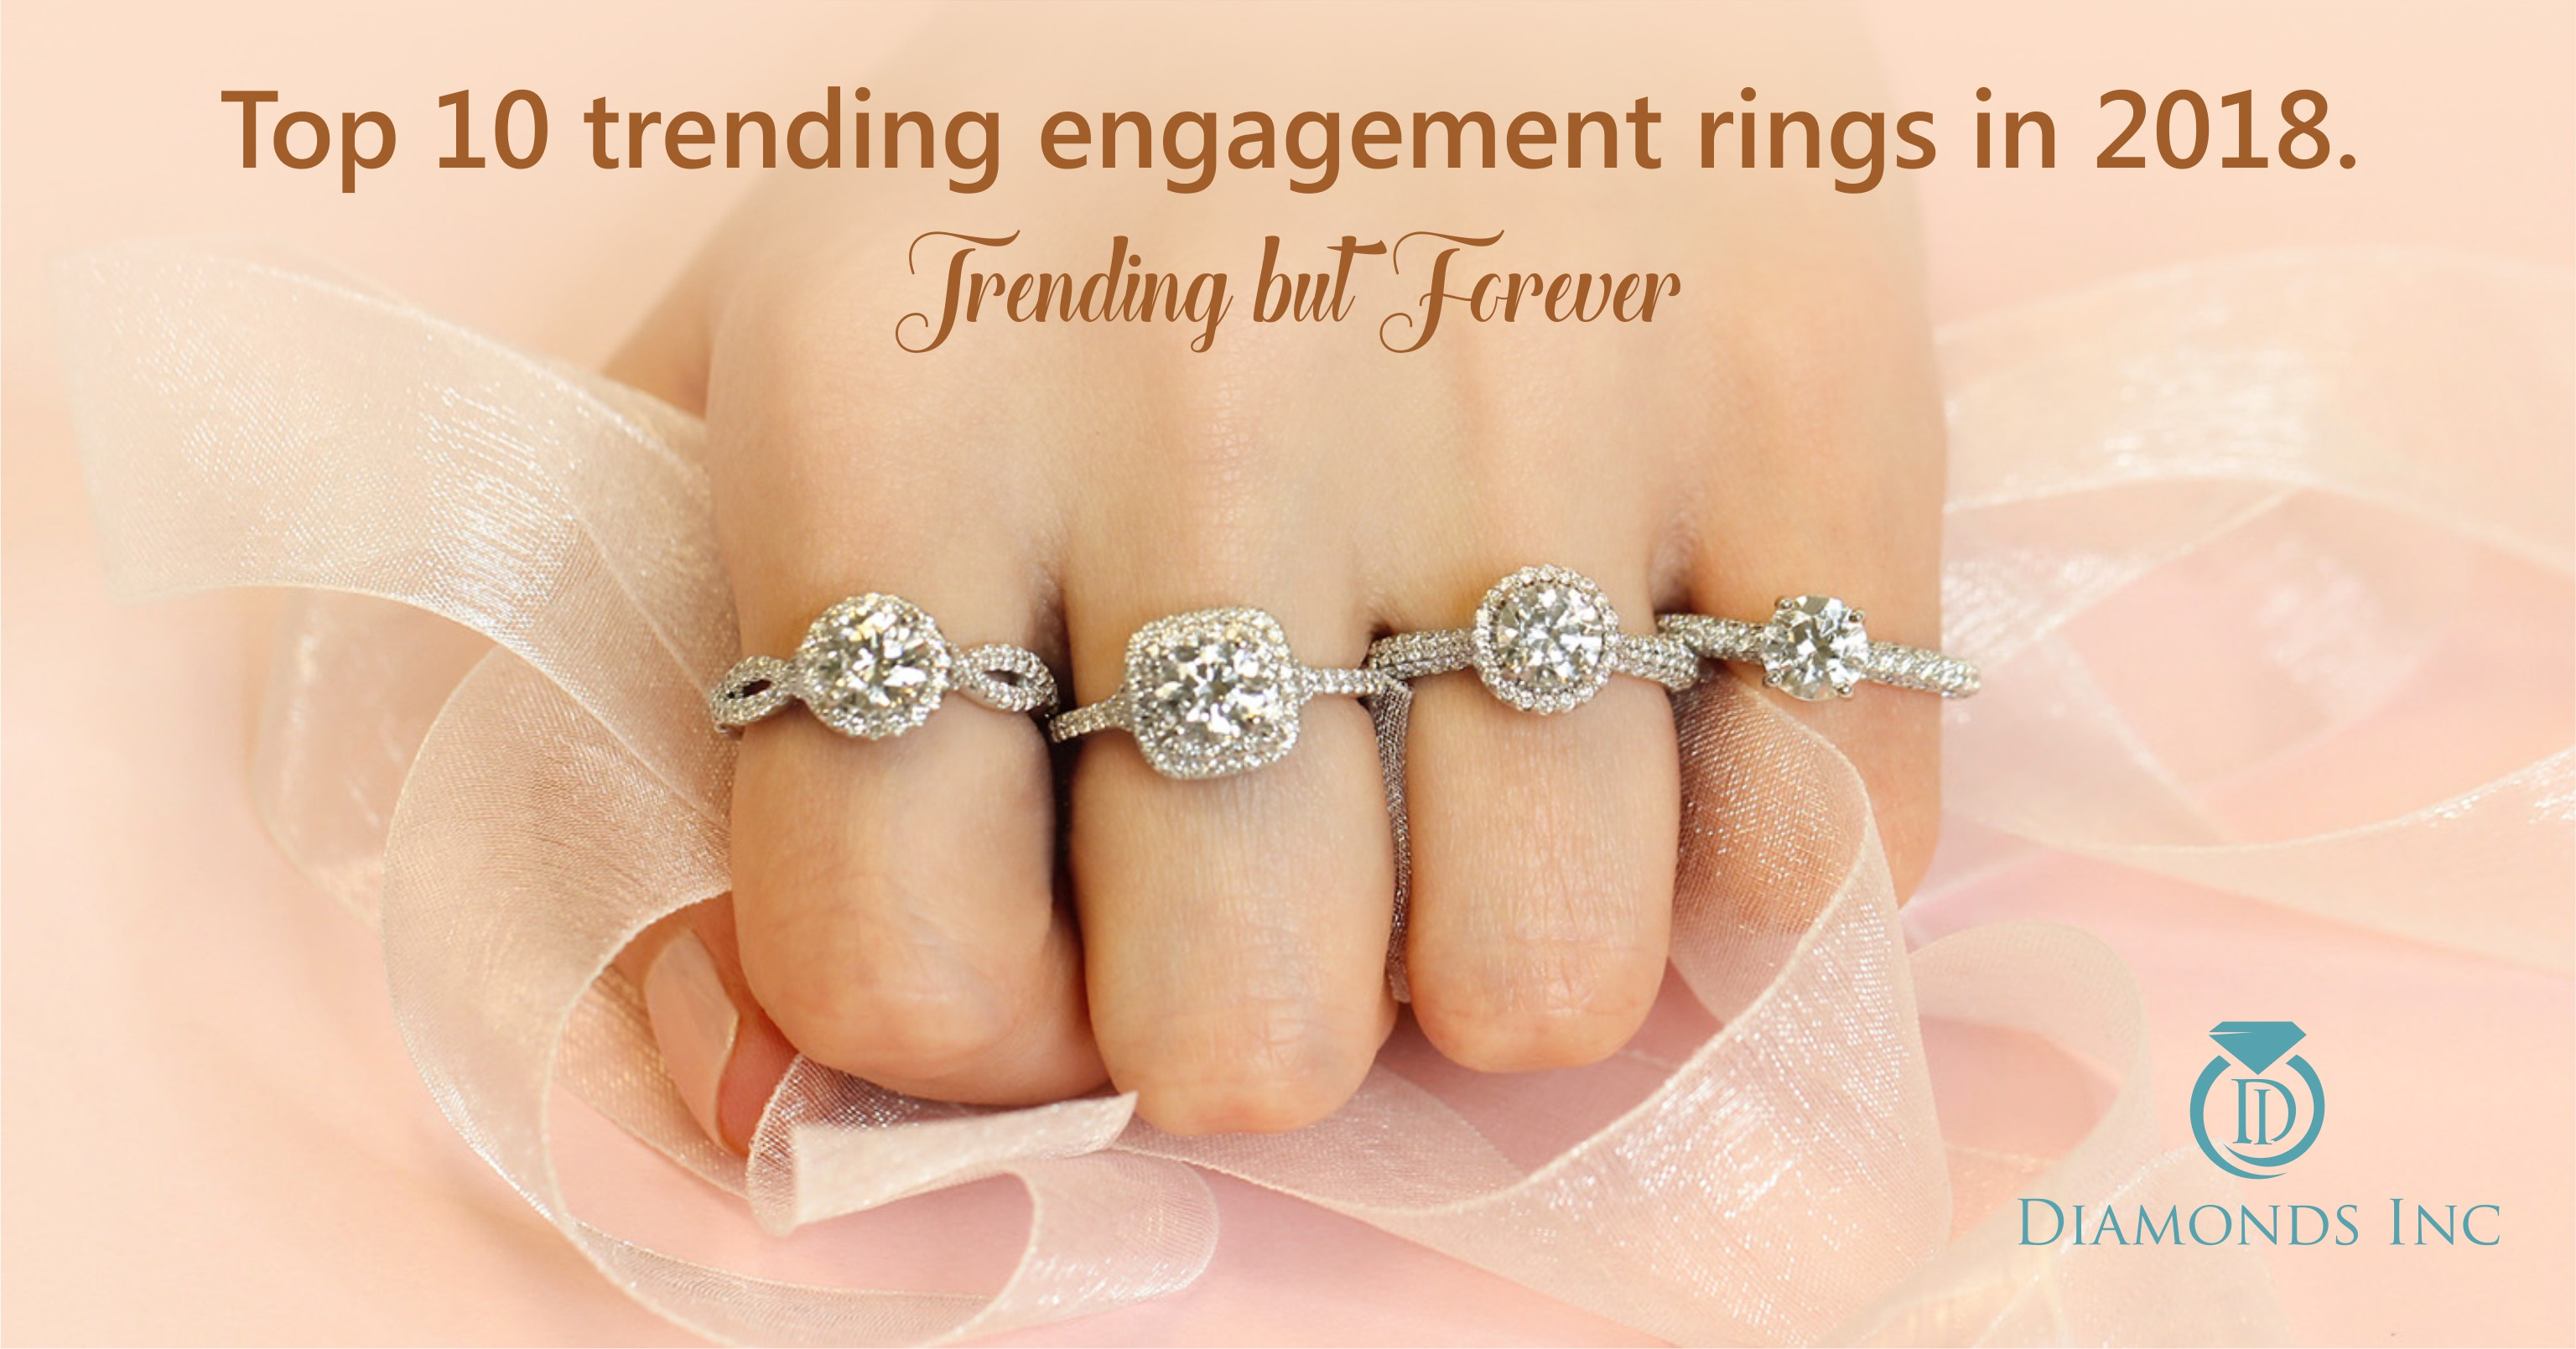 engagement jewellery a jewelers does what ring lee raymond new rings pics of look like popular